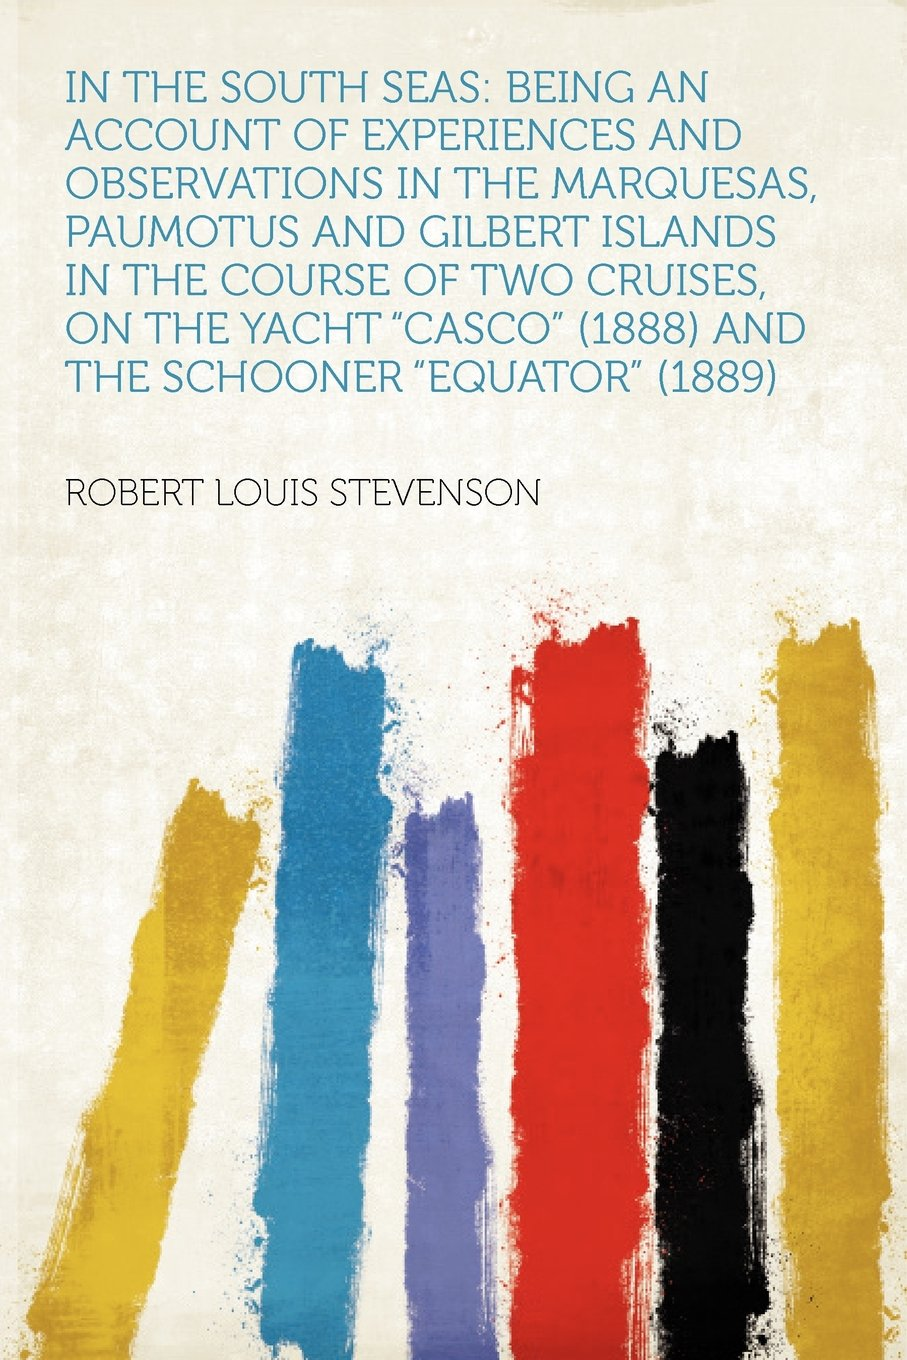 """Download In the South Seas: Being an Account of Experiences and Observations in the Marquesas, Paumotus and Gilbert Islands in the Course of Two Cruises, on ... (1888) and the Schooner """"Equator"""" (1889) PDF"""